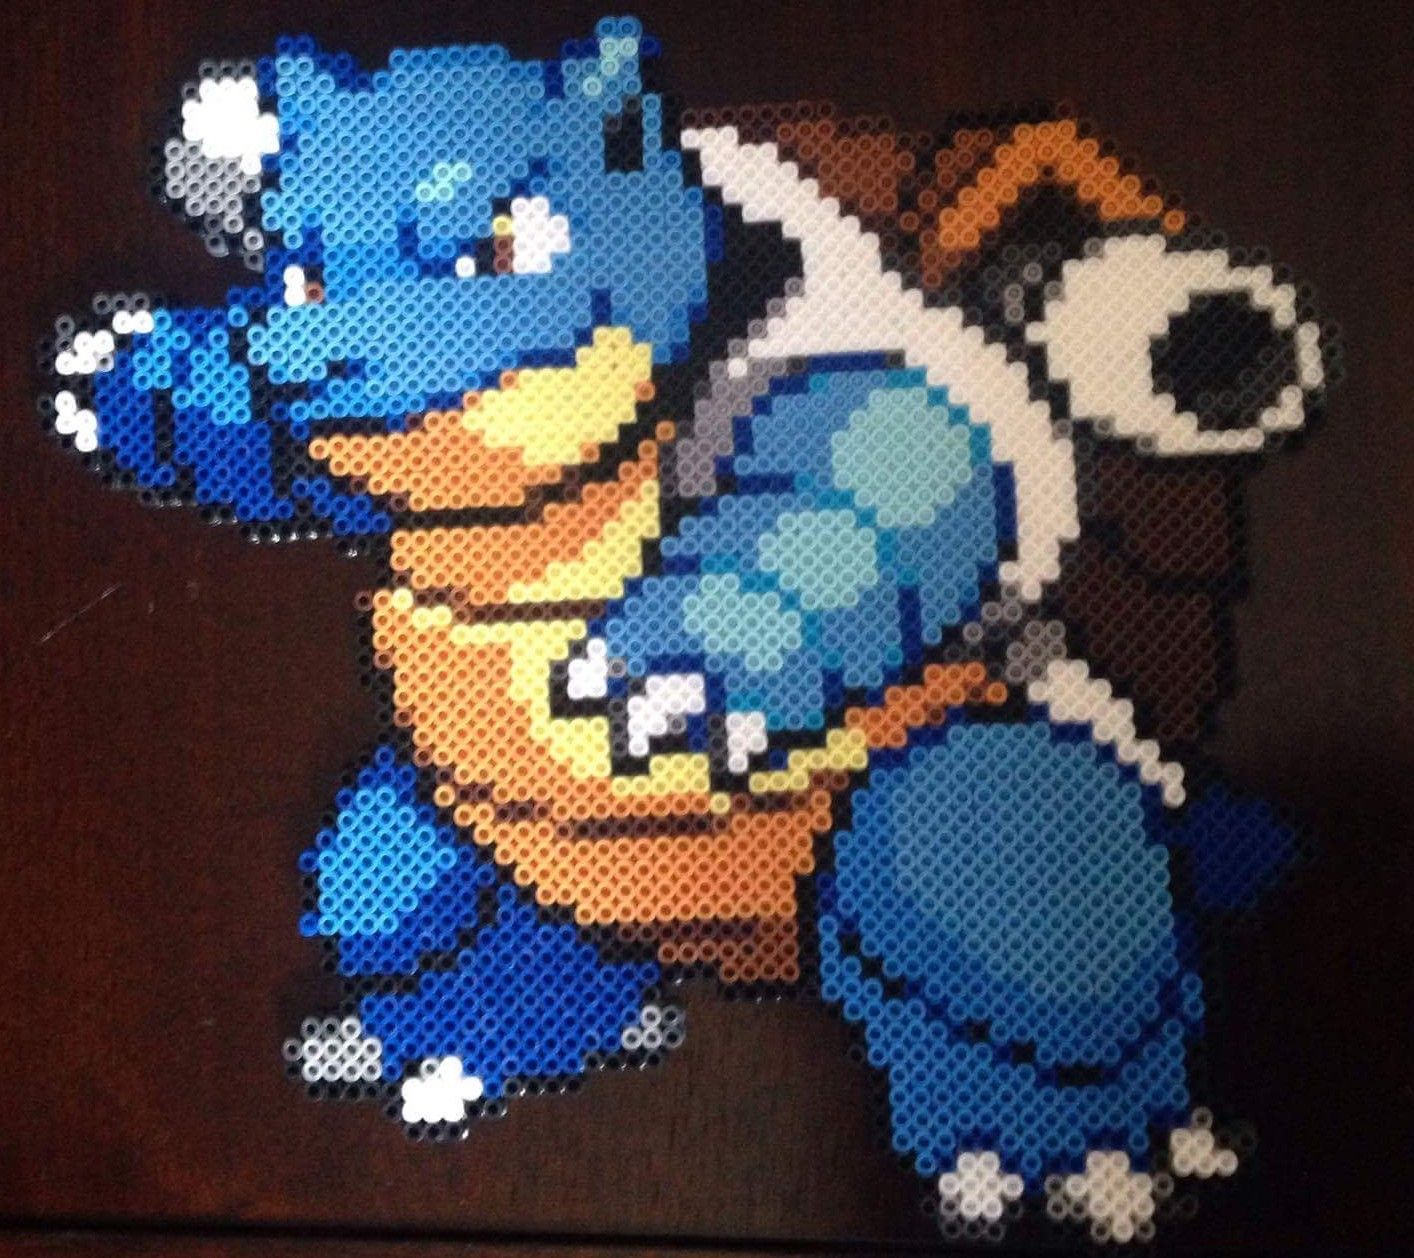 Blastoise | Pokemon | Pinterest | Perler beads and Beads